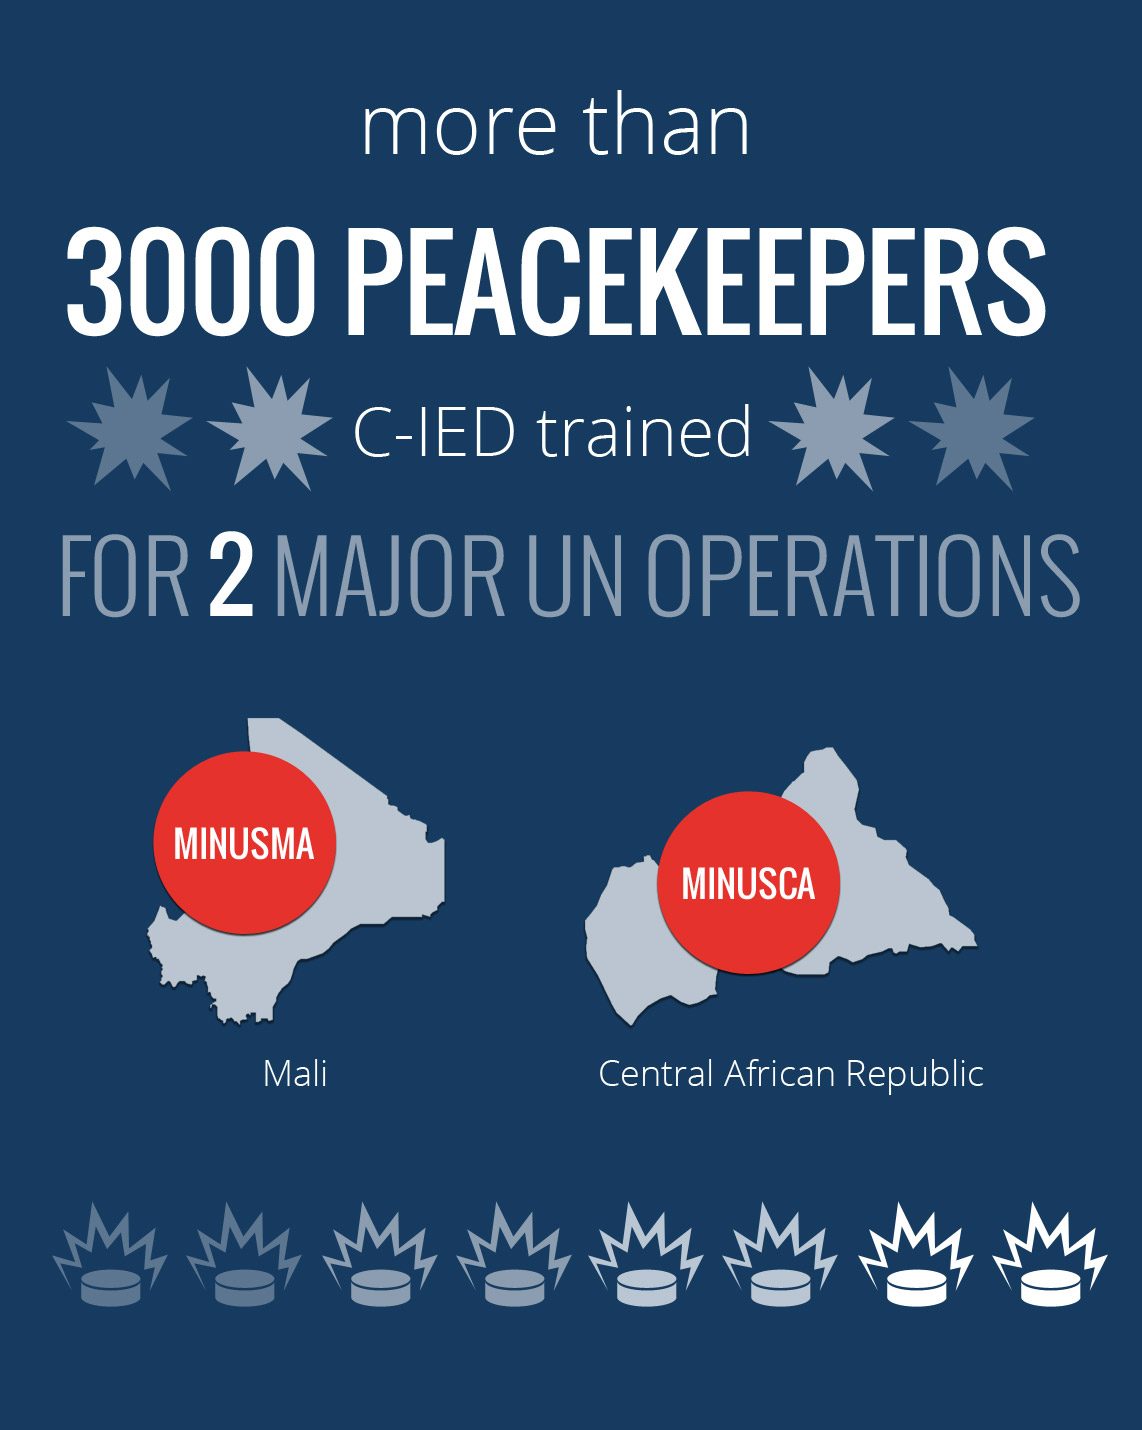 more than 3000 peacekeepers C-IED trained for 2 major UN operations: MINUSMA (Mali), MINUSCA (Central African Republic)